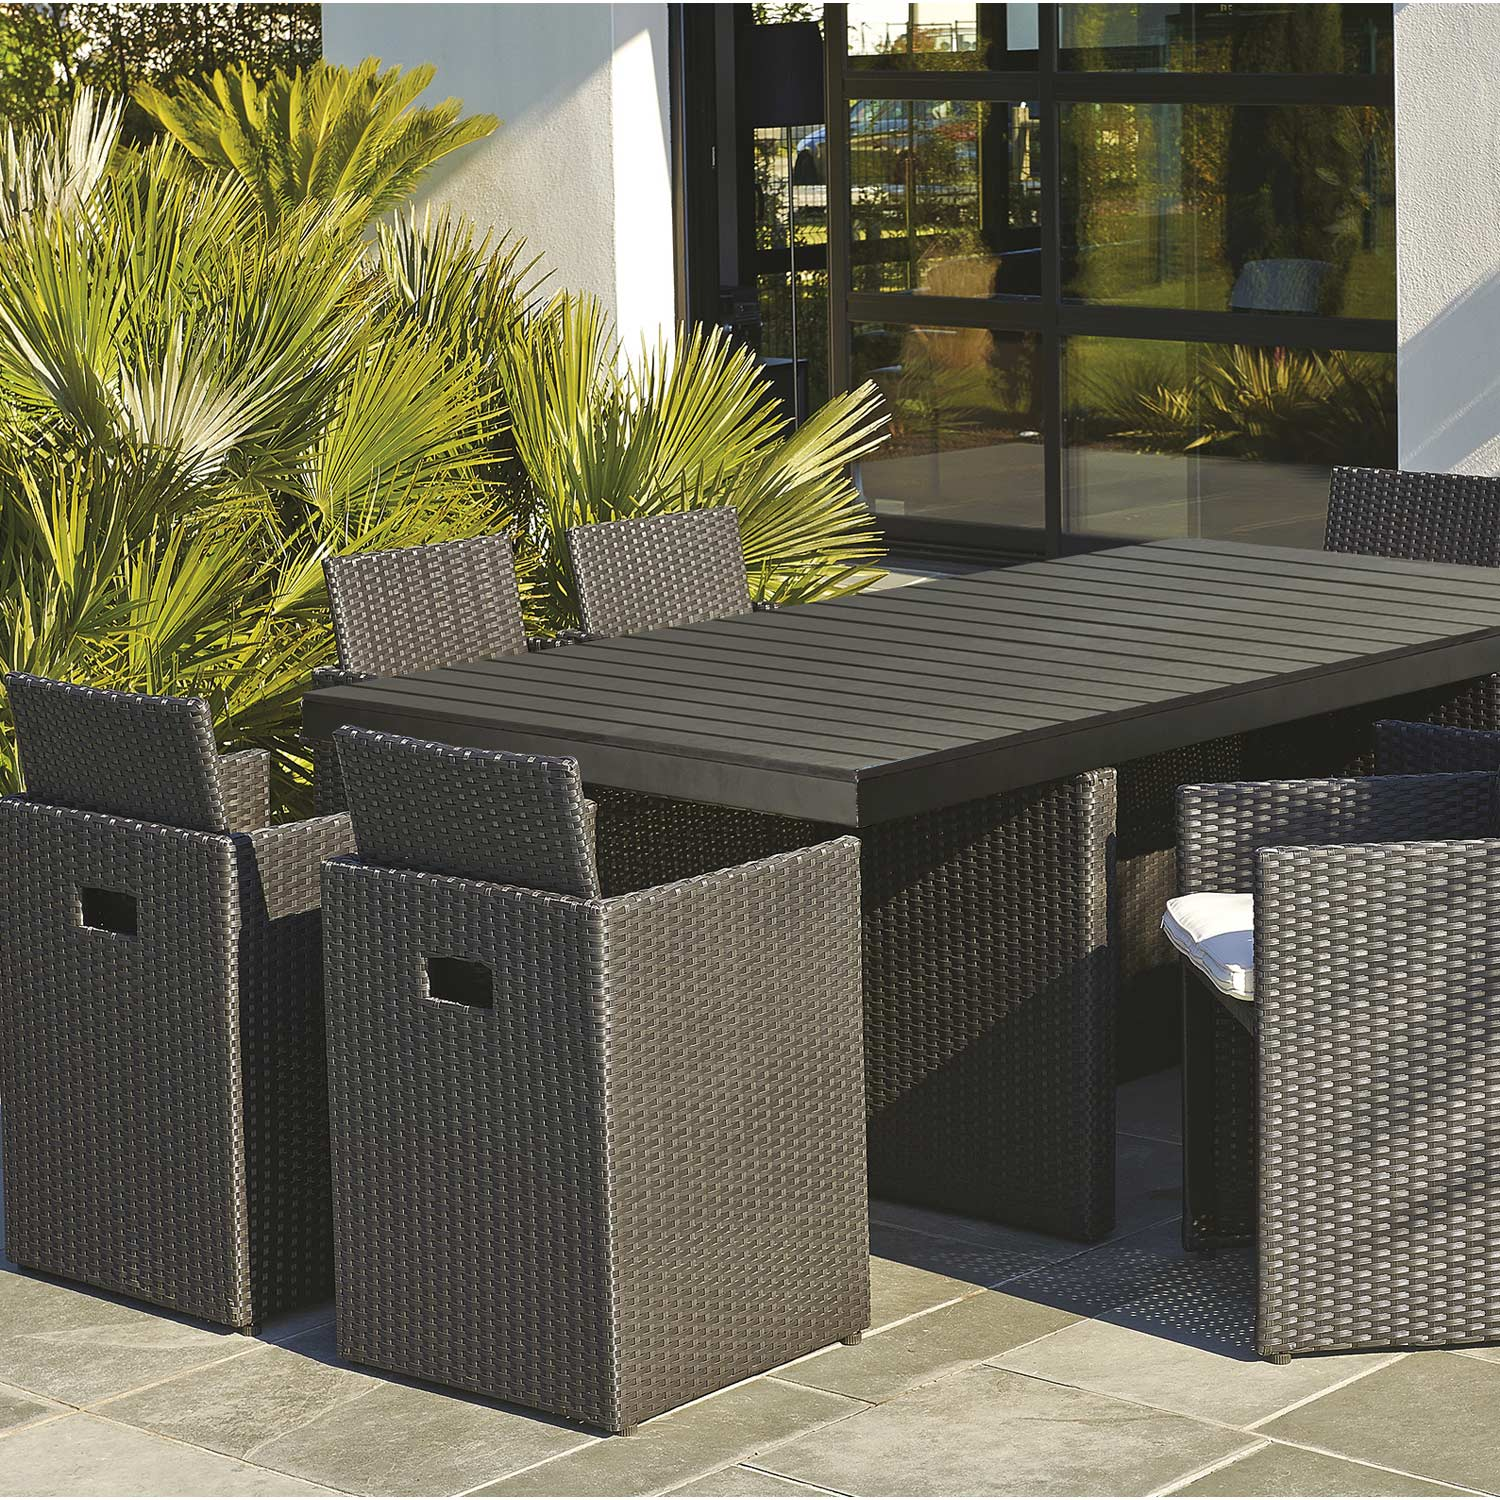 Salon de jardin encastrable r sine tress e noir 1 table for Table exterieur 12 places